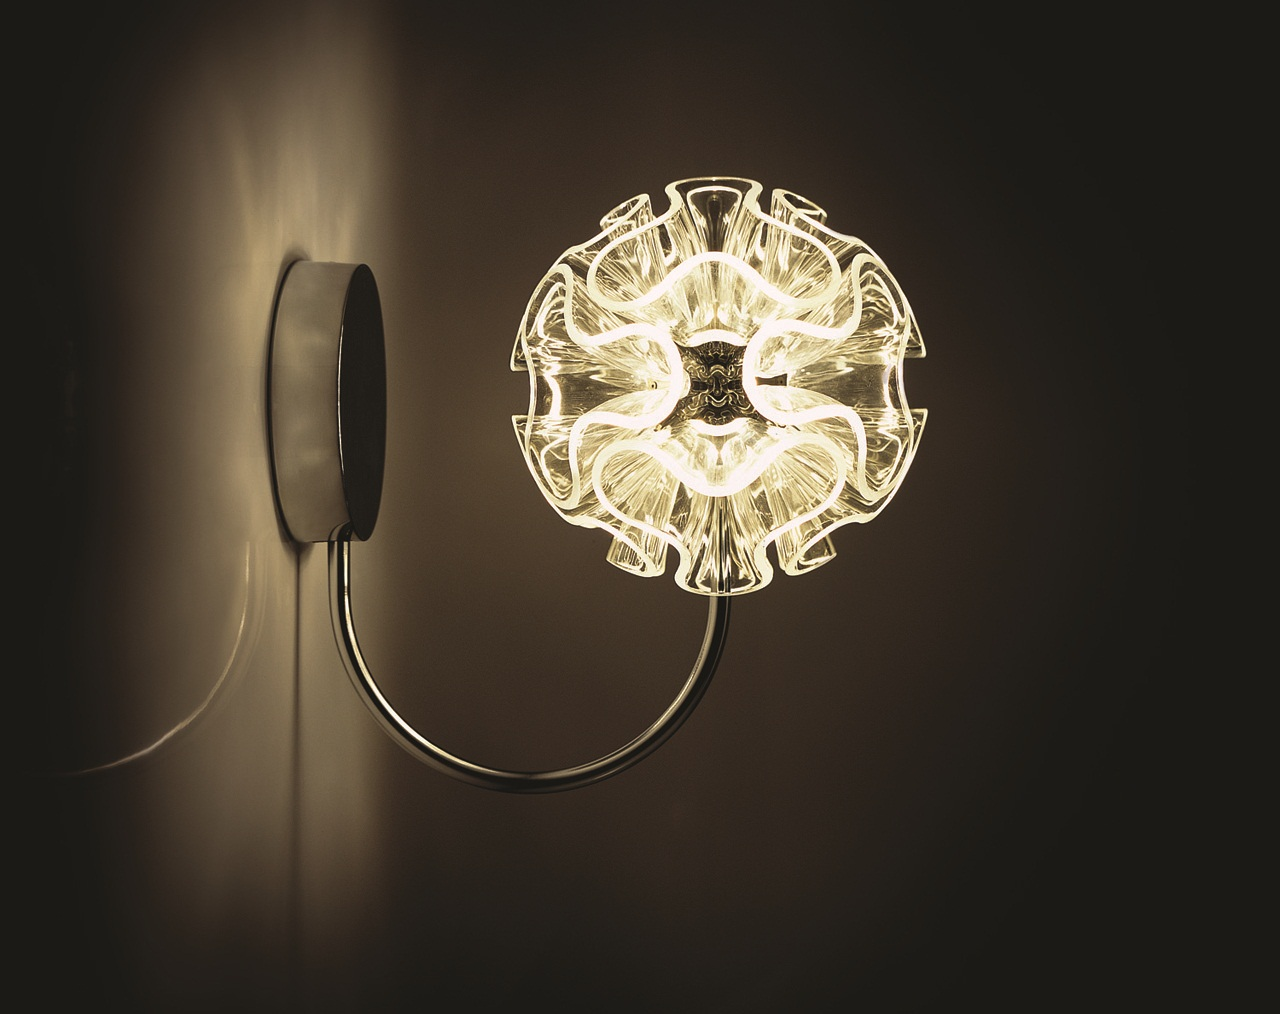 Remarkable And Unique Lights From Qisdesign